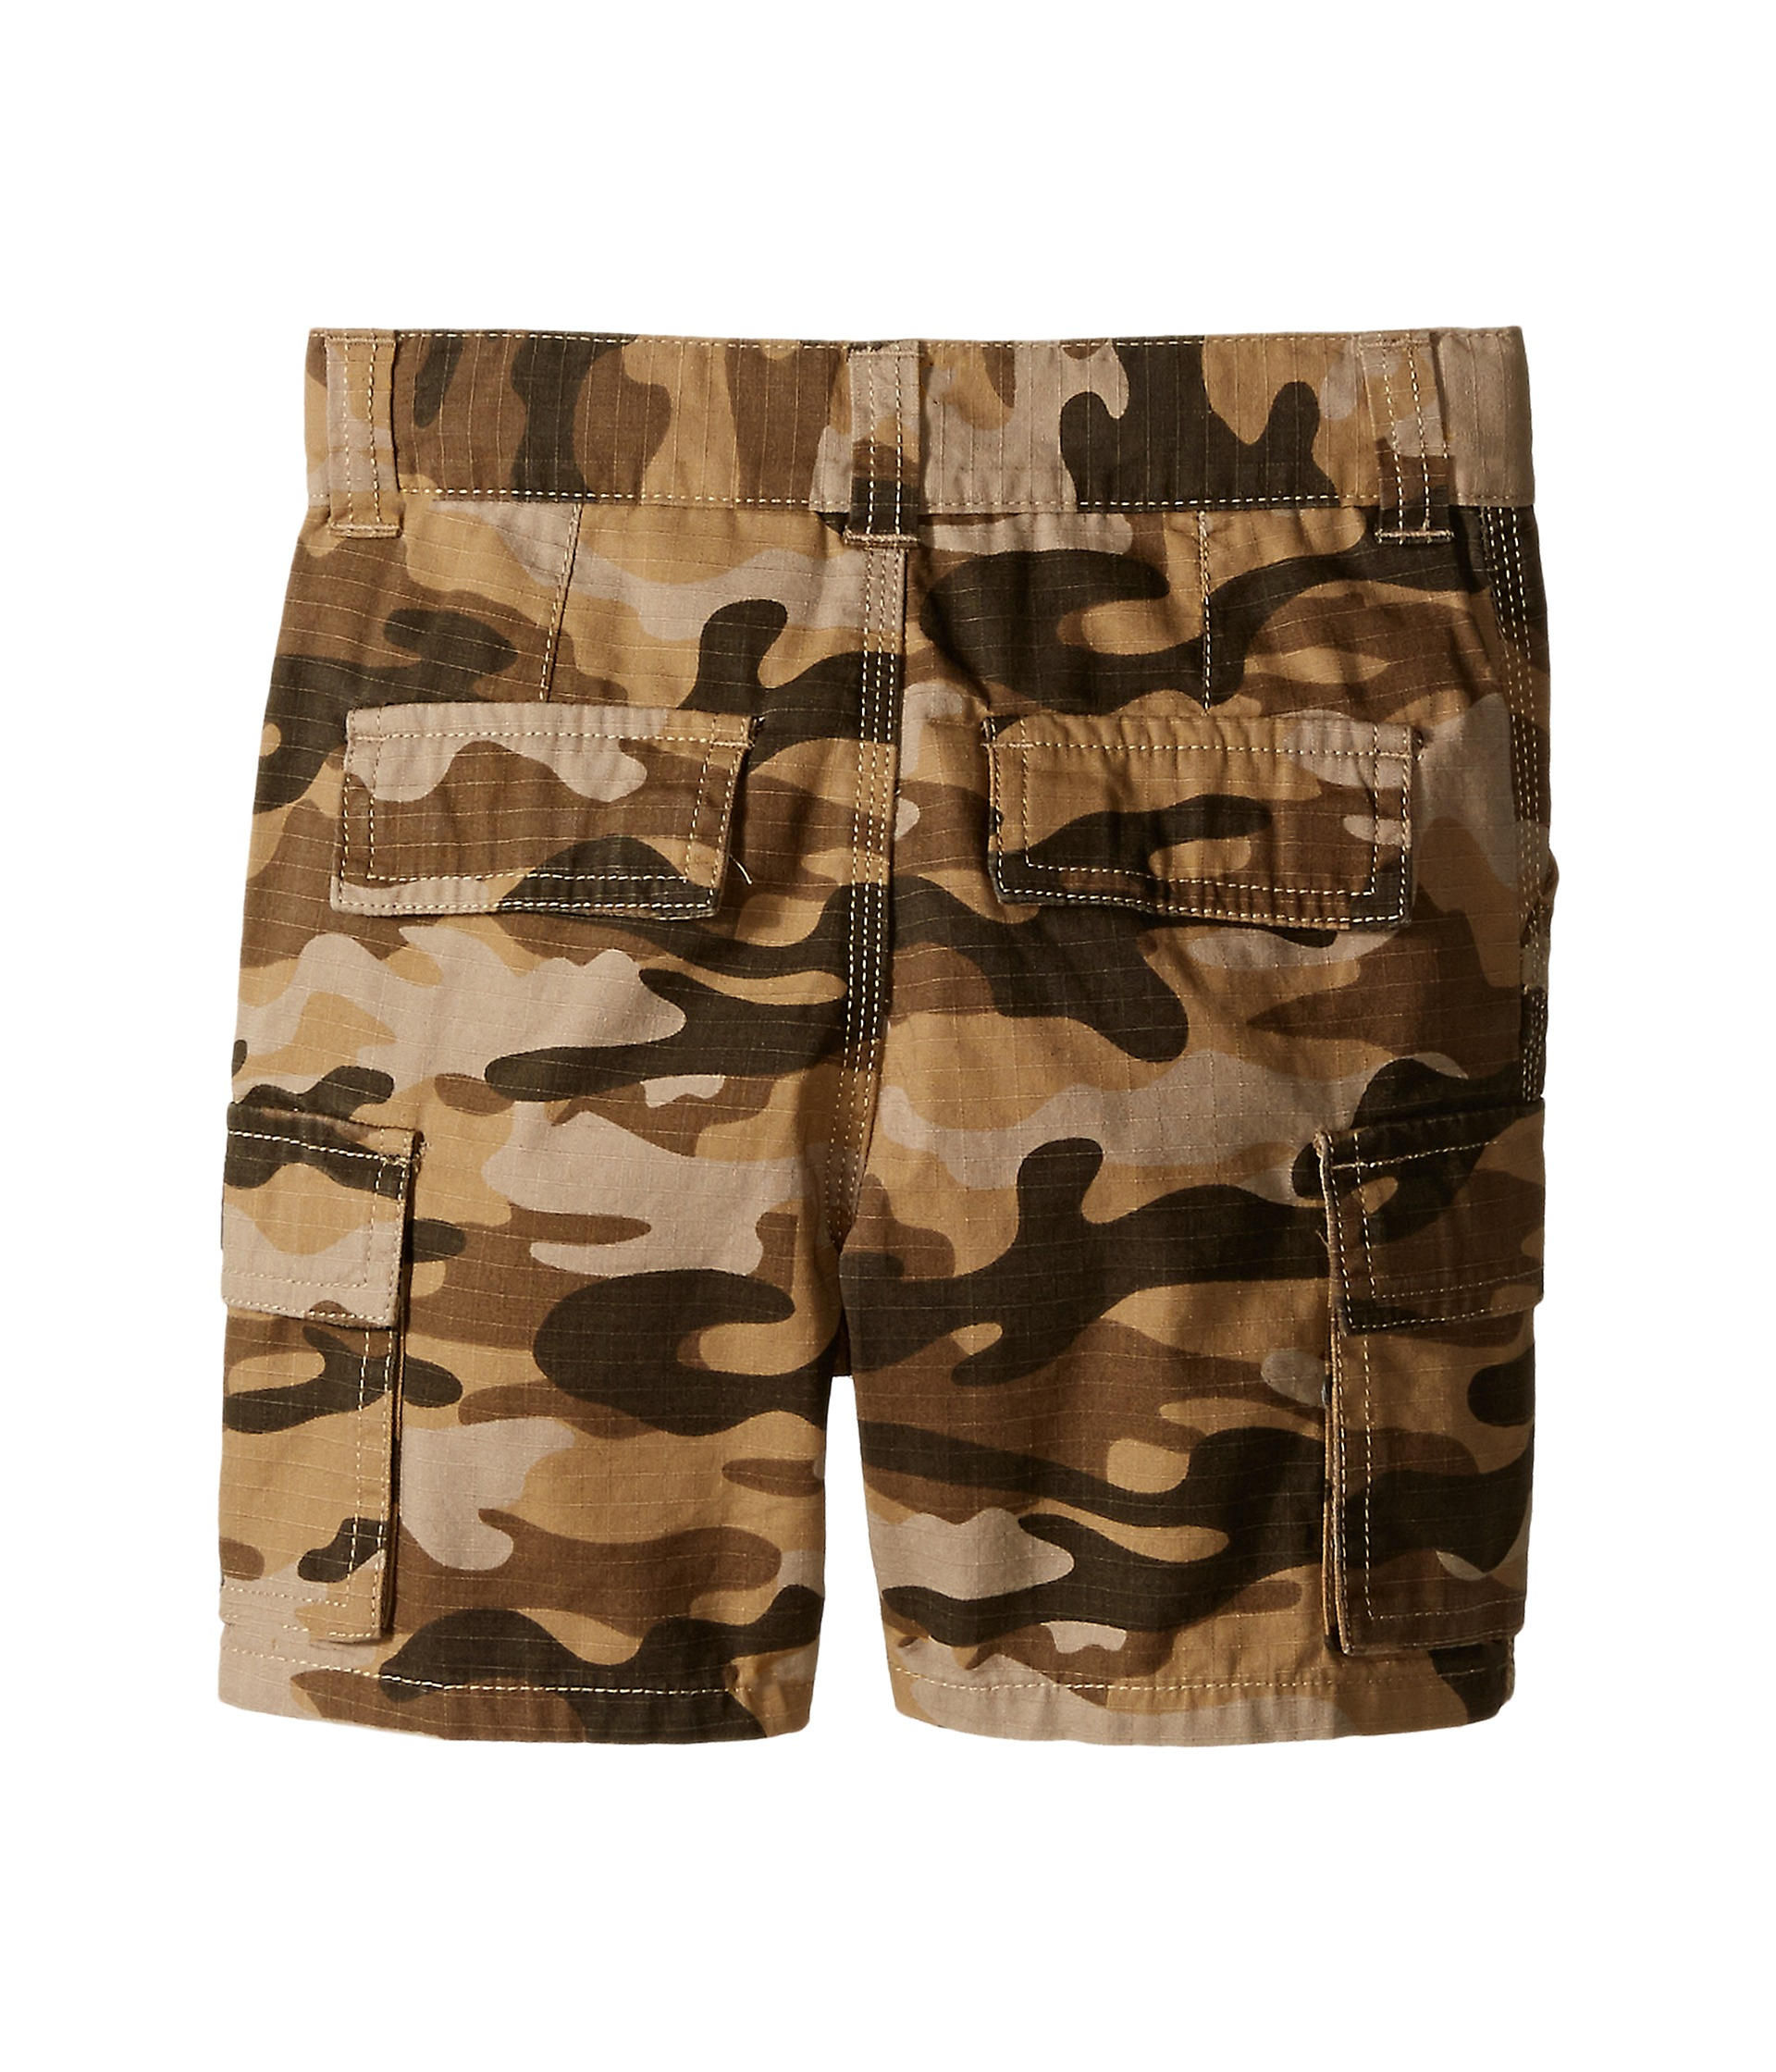 The Camo Cargo Shorts are durable and comfortable shorts for active kids. With a camo design, an adjustable waistband and lots of pockets, these shorts are also shrink and fade resistant - .